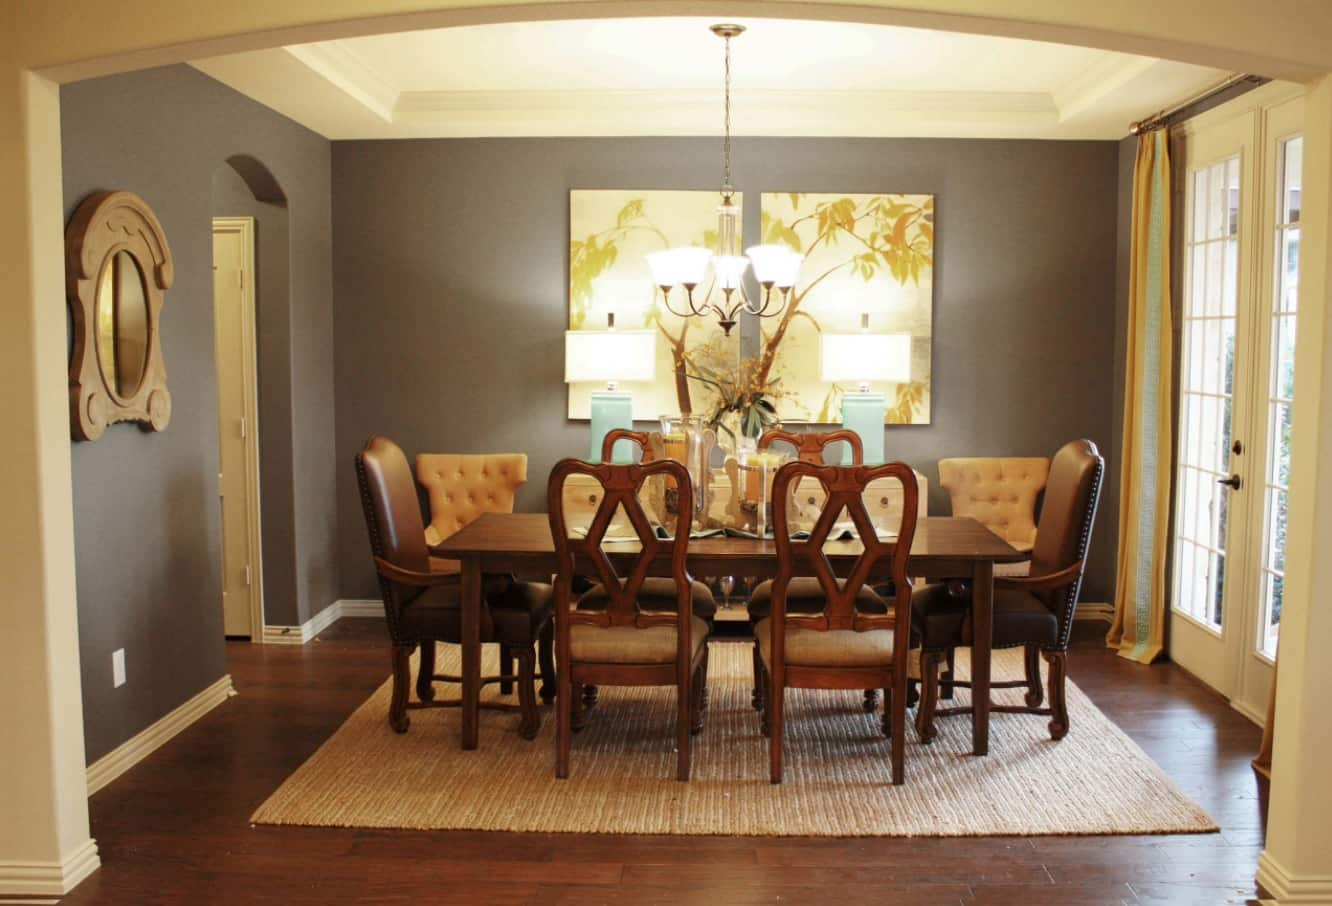 Modern Leather Dining Chairs to Complement the Interior. Brown chairs in the set for 8 persons and dark grey walls in the room